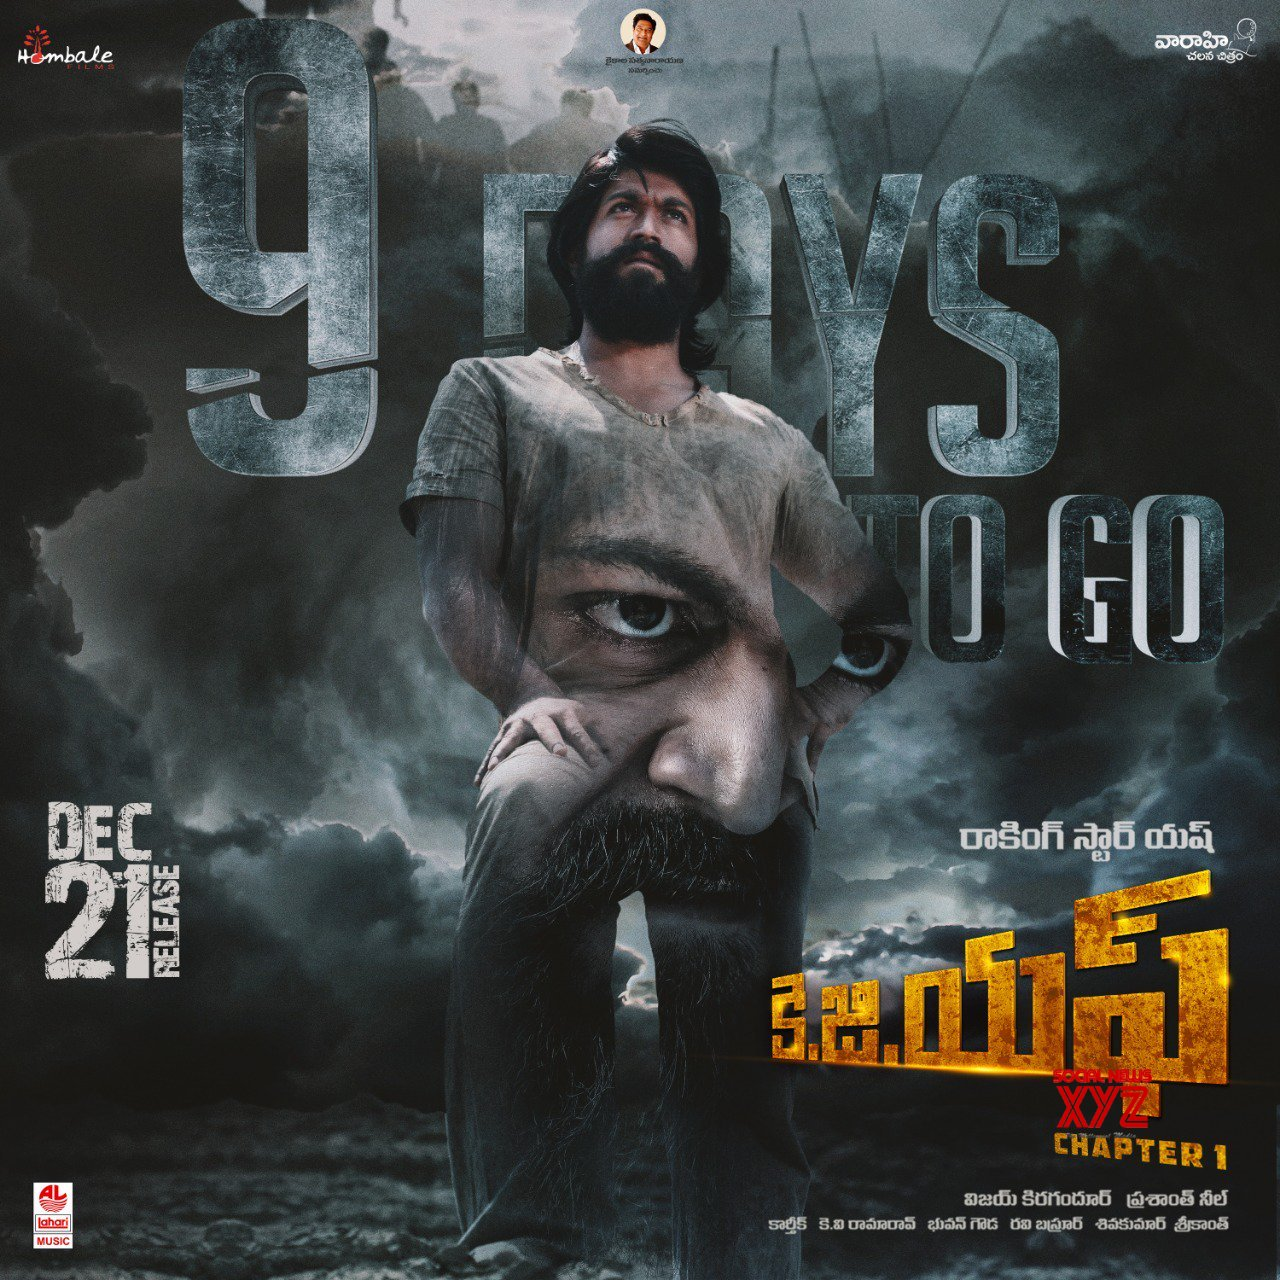 KGF Movie 9 Days To GO Poster